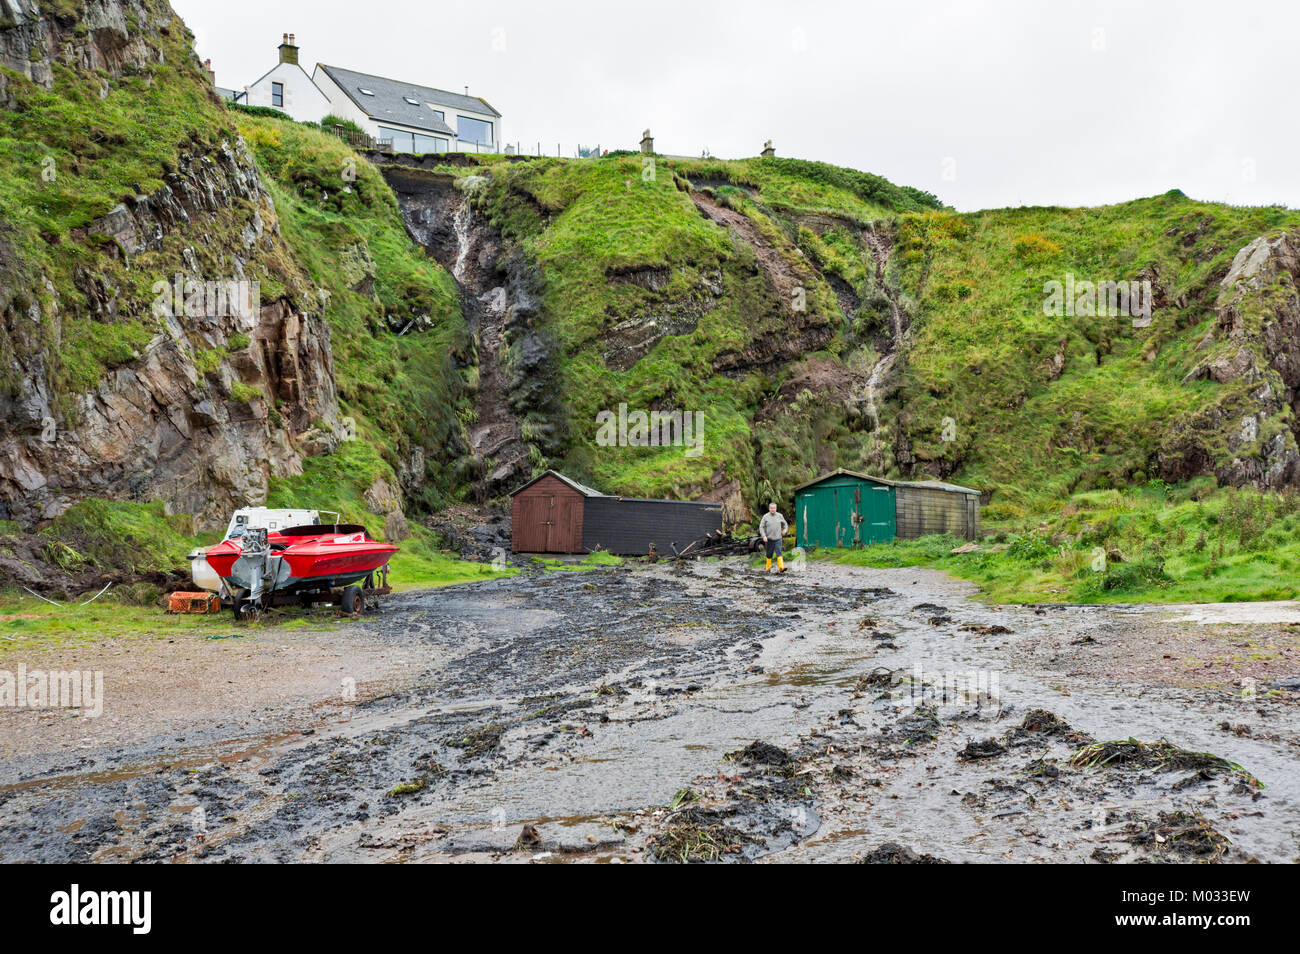 PORTKNOCKIE MORAY SCOTLAND LANDSLIPS FROM CLIFFS INTO THE HARBOUR AREA DUE TO SEVERE RAINFALL SEPTEMBER 2017 NO.10 - Stock Image